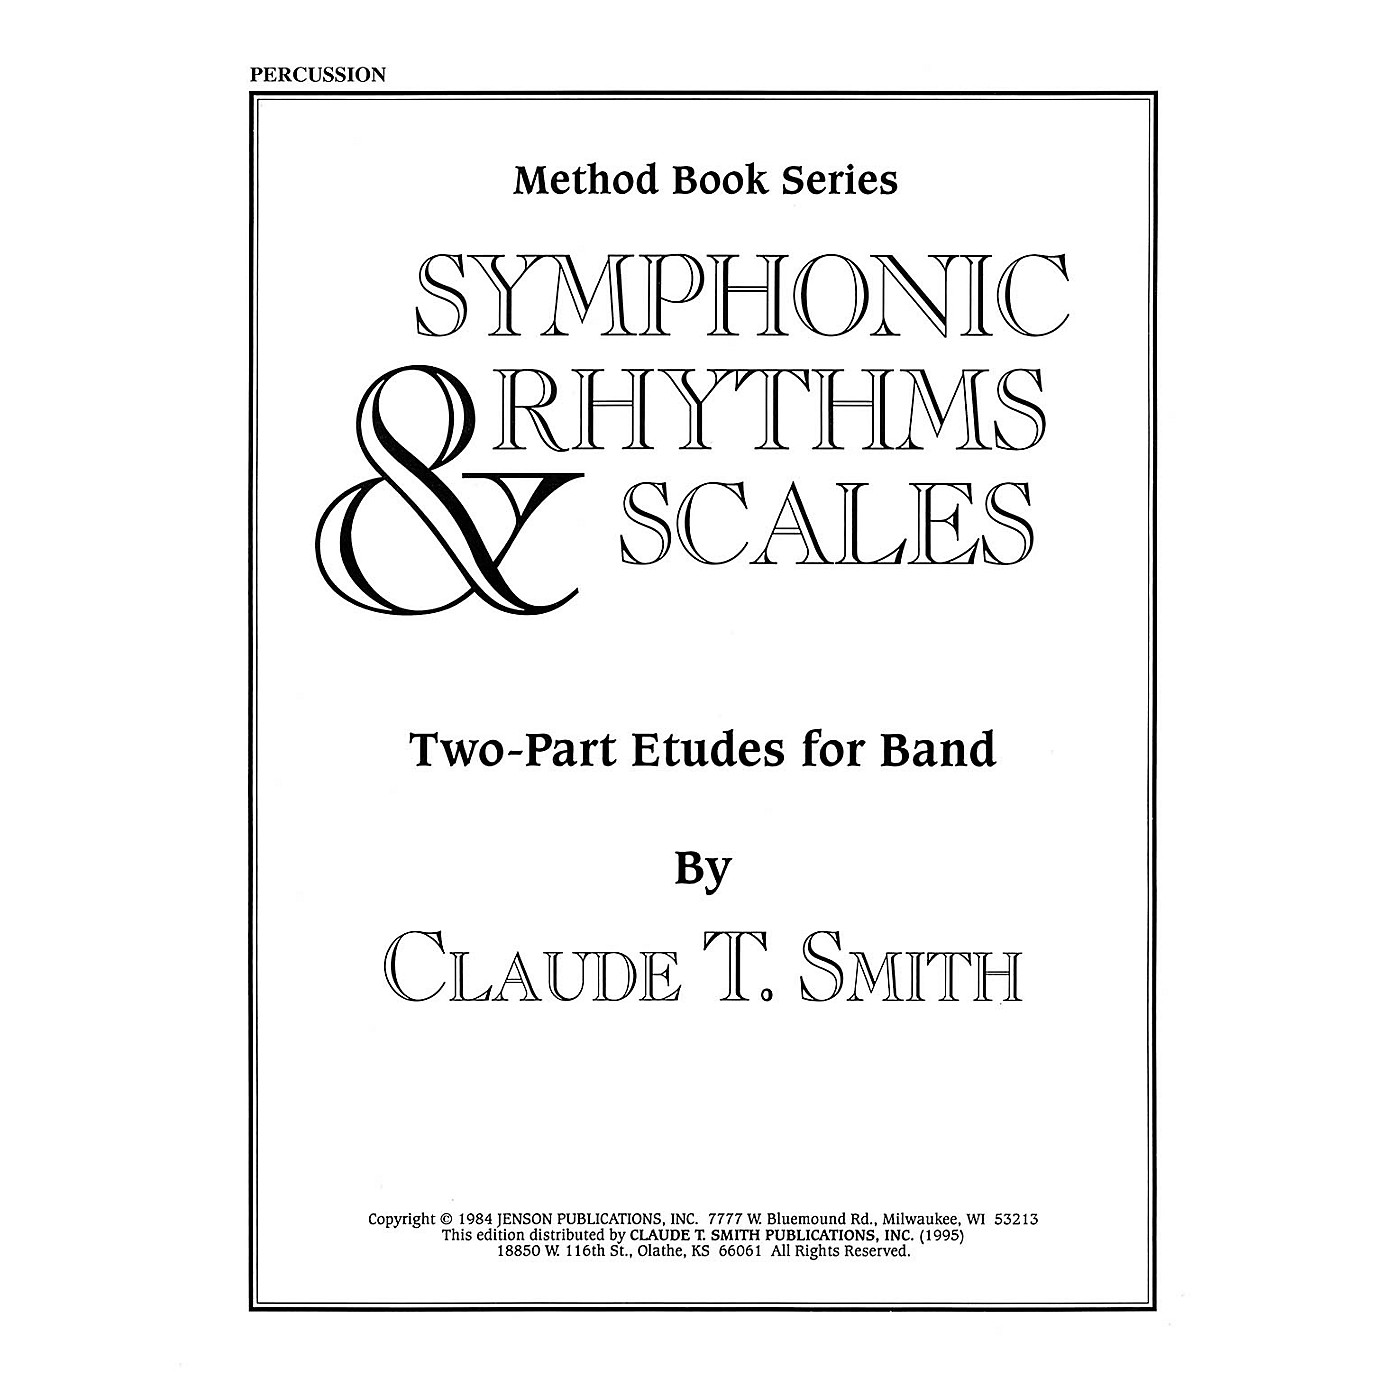 Hal Leonard Symphonic Rhythms & Scales (Two-Part Etudes for Band and Orchestra Percussion) Concert Band Level 2-4 thumbnail